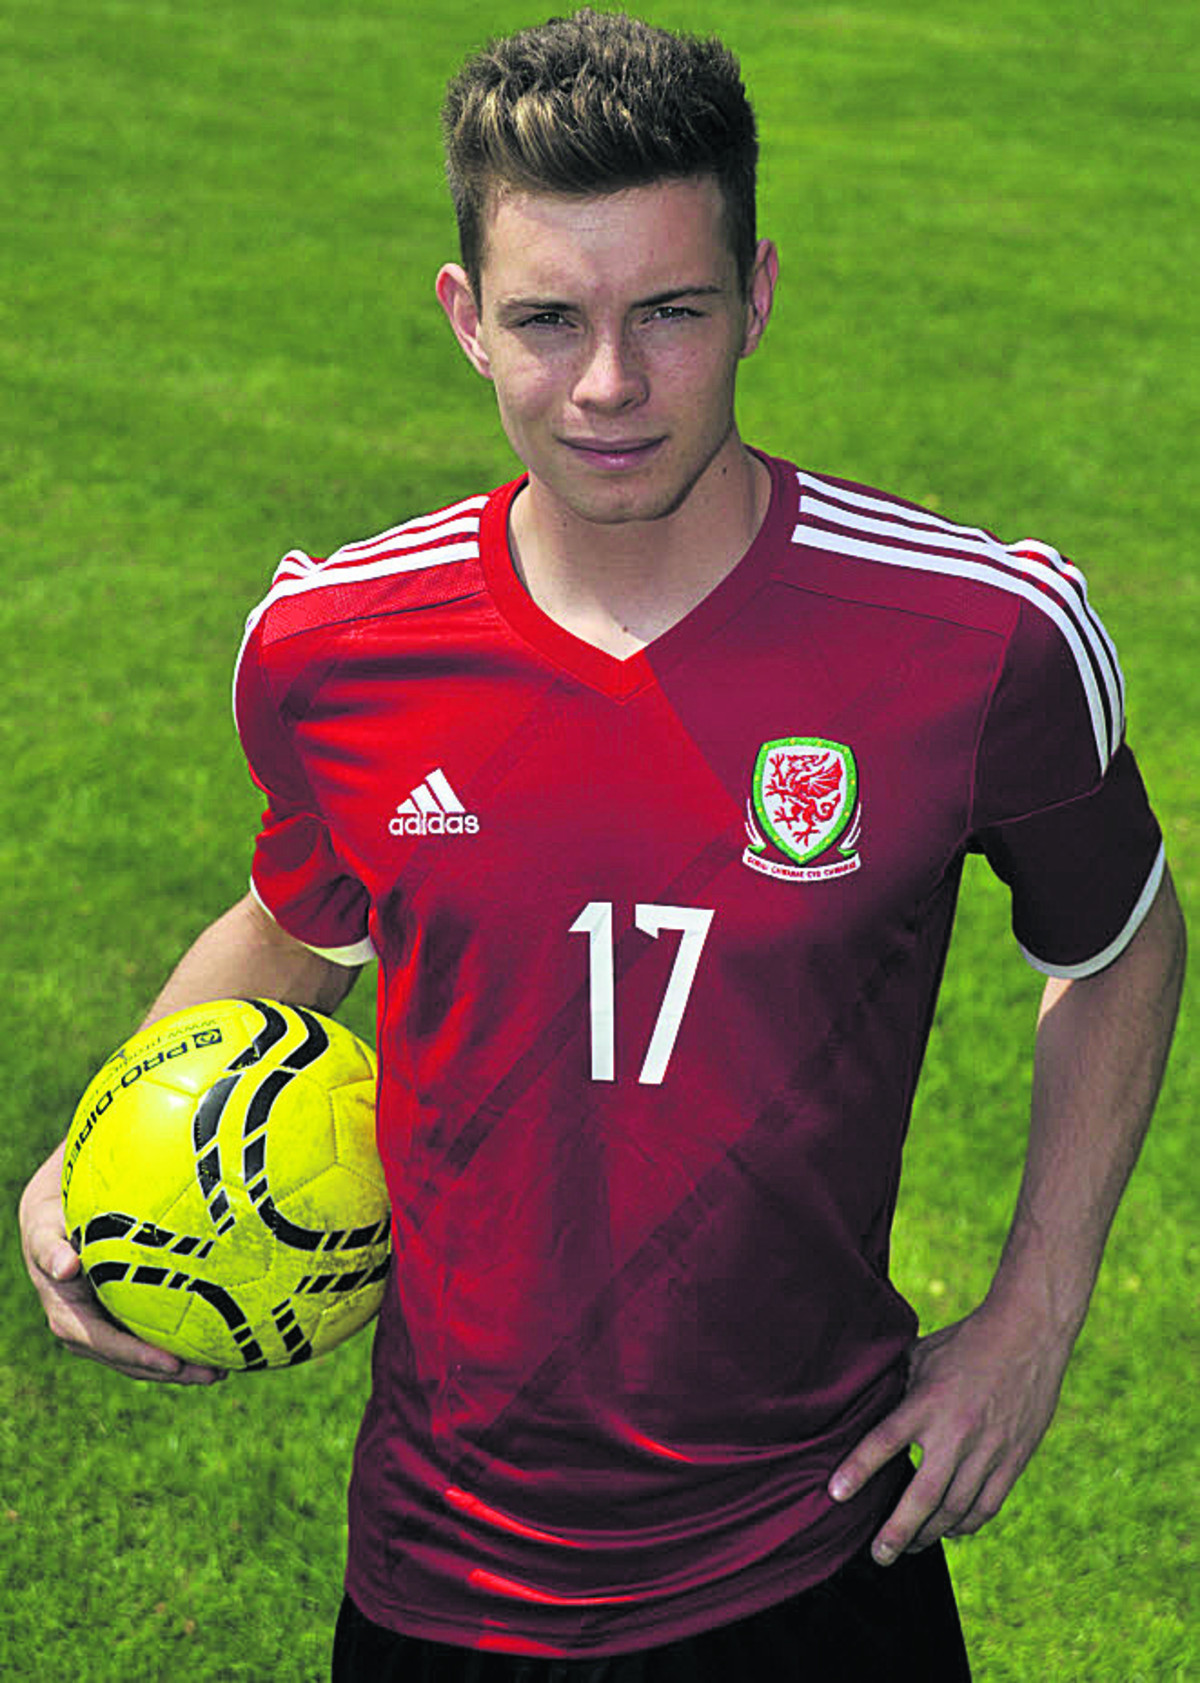 Alex Bray is hoping to help Wales into the U19 European Championship finals